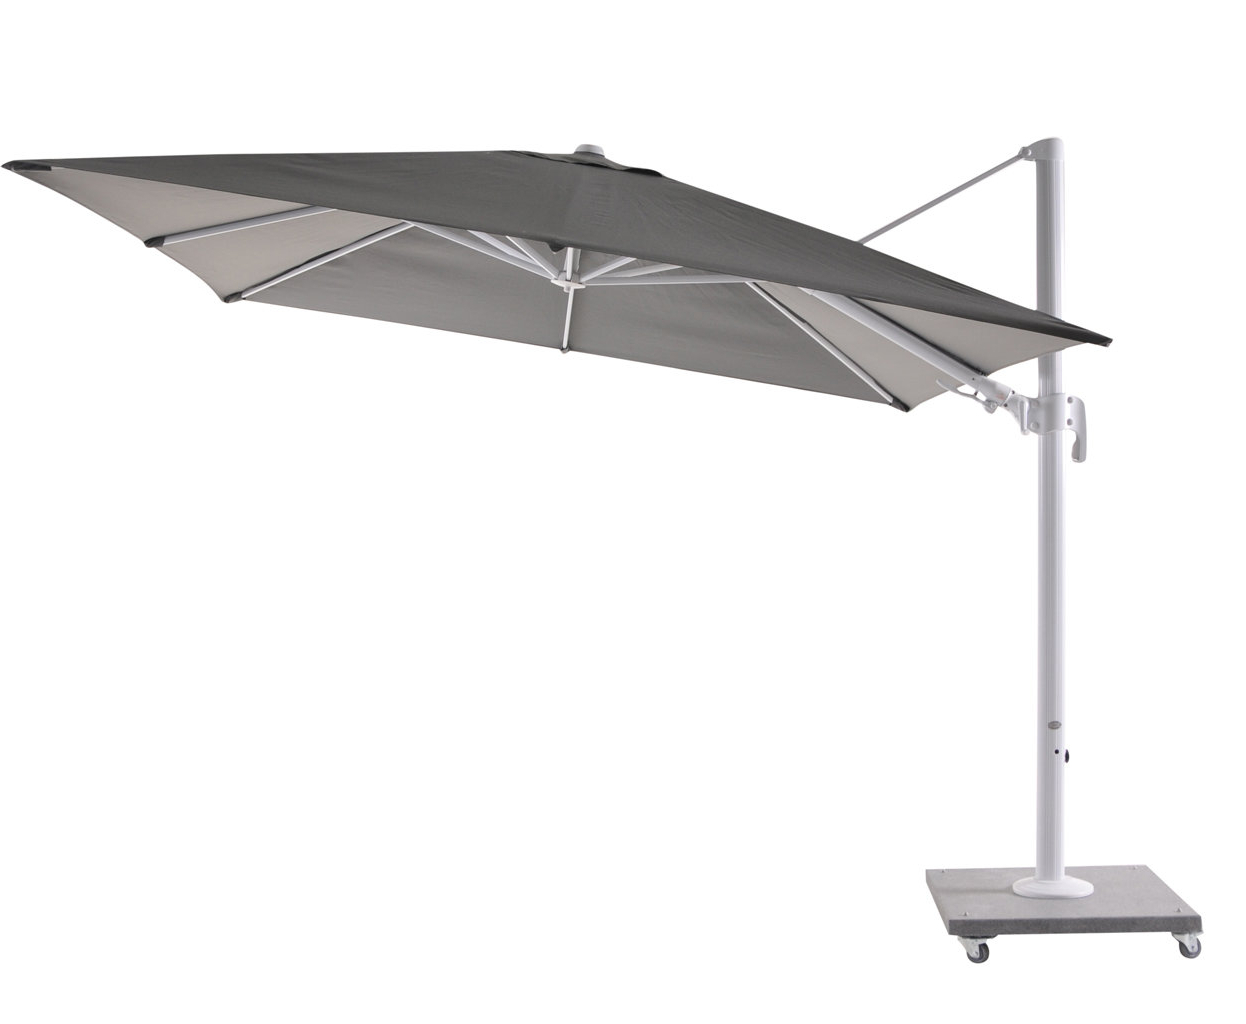 Grote Liberty Aluminum Square Cantilever Umbrellas Throughout Most Current Bozarth 10' Square Cantilever Umbrella (Gallery 17 of 20)